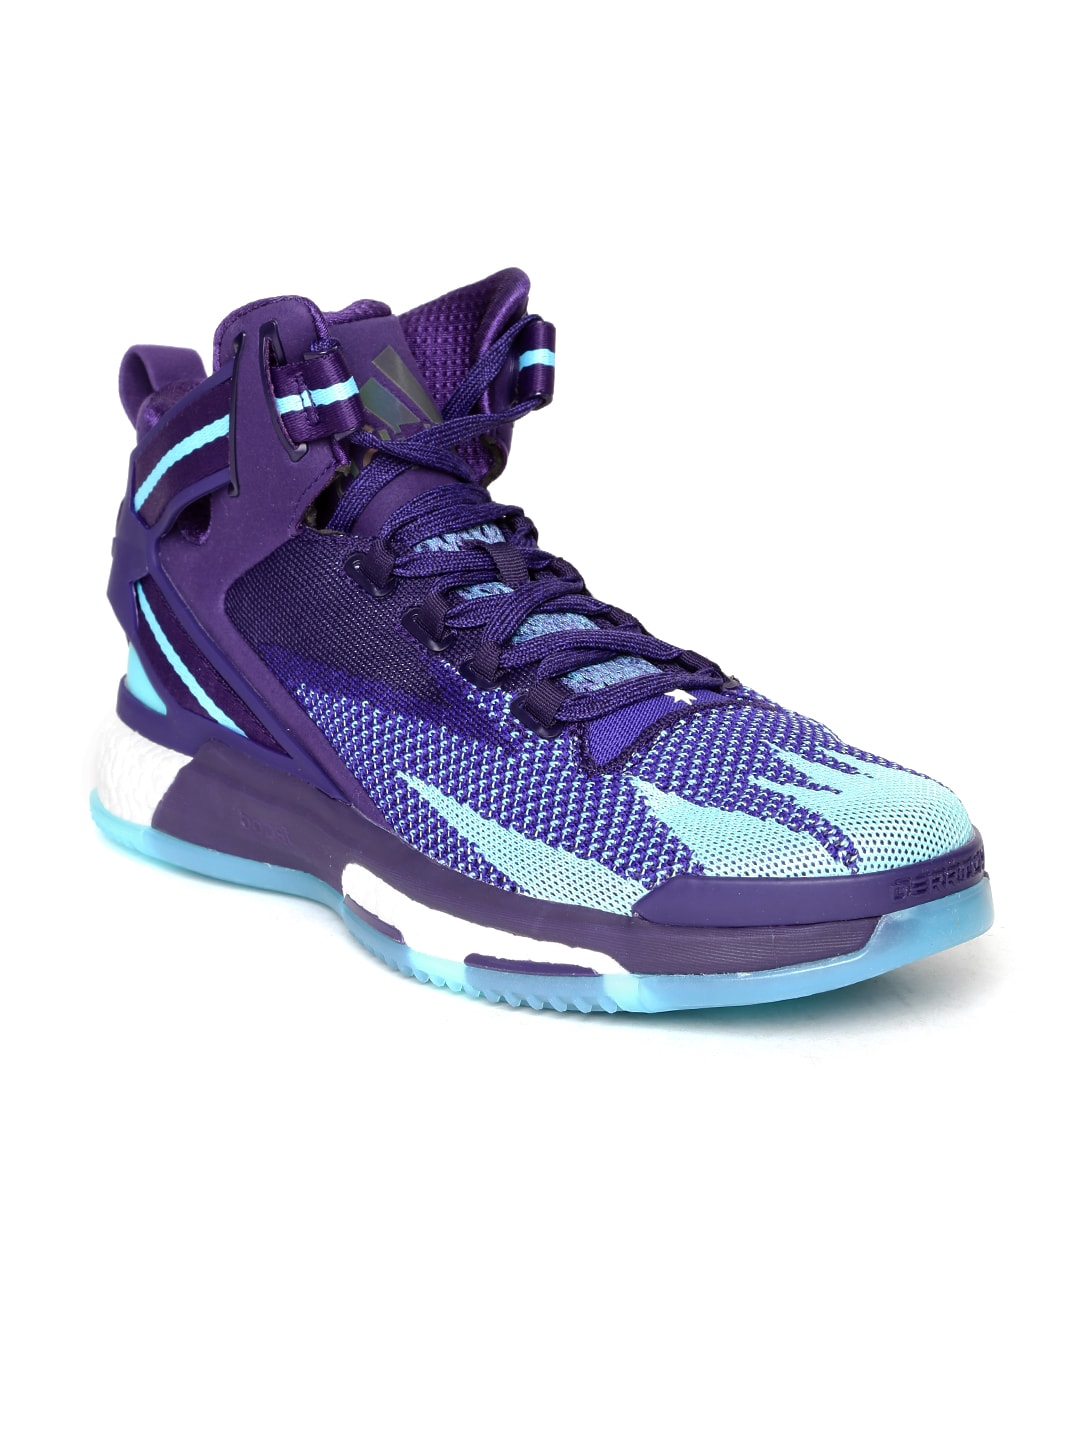 e3ce3cd93045 Adidas q16507 Men Purple D Rose 6 Boost Primeknit Glow In The Dark  Basketball Shoes - Price in India